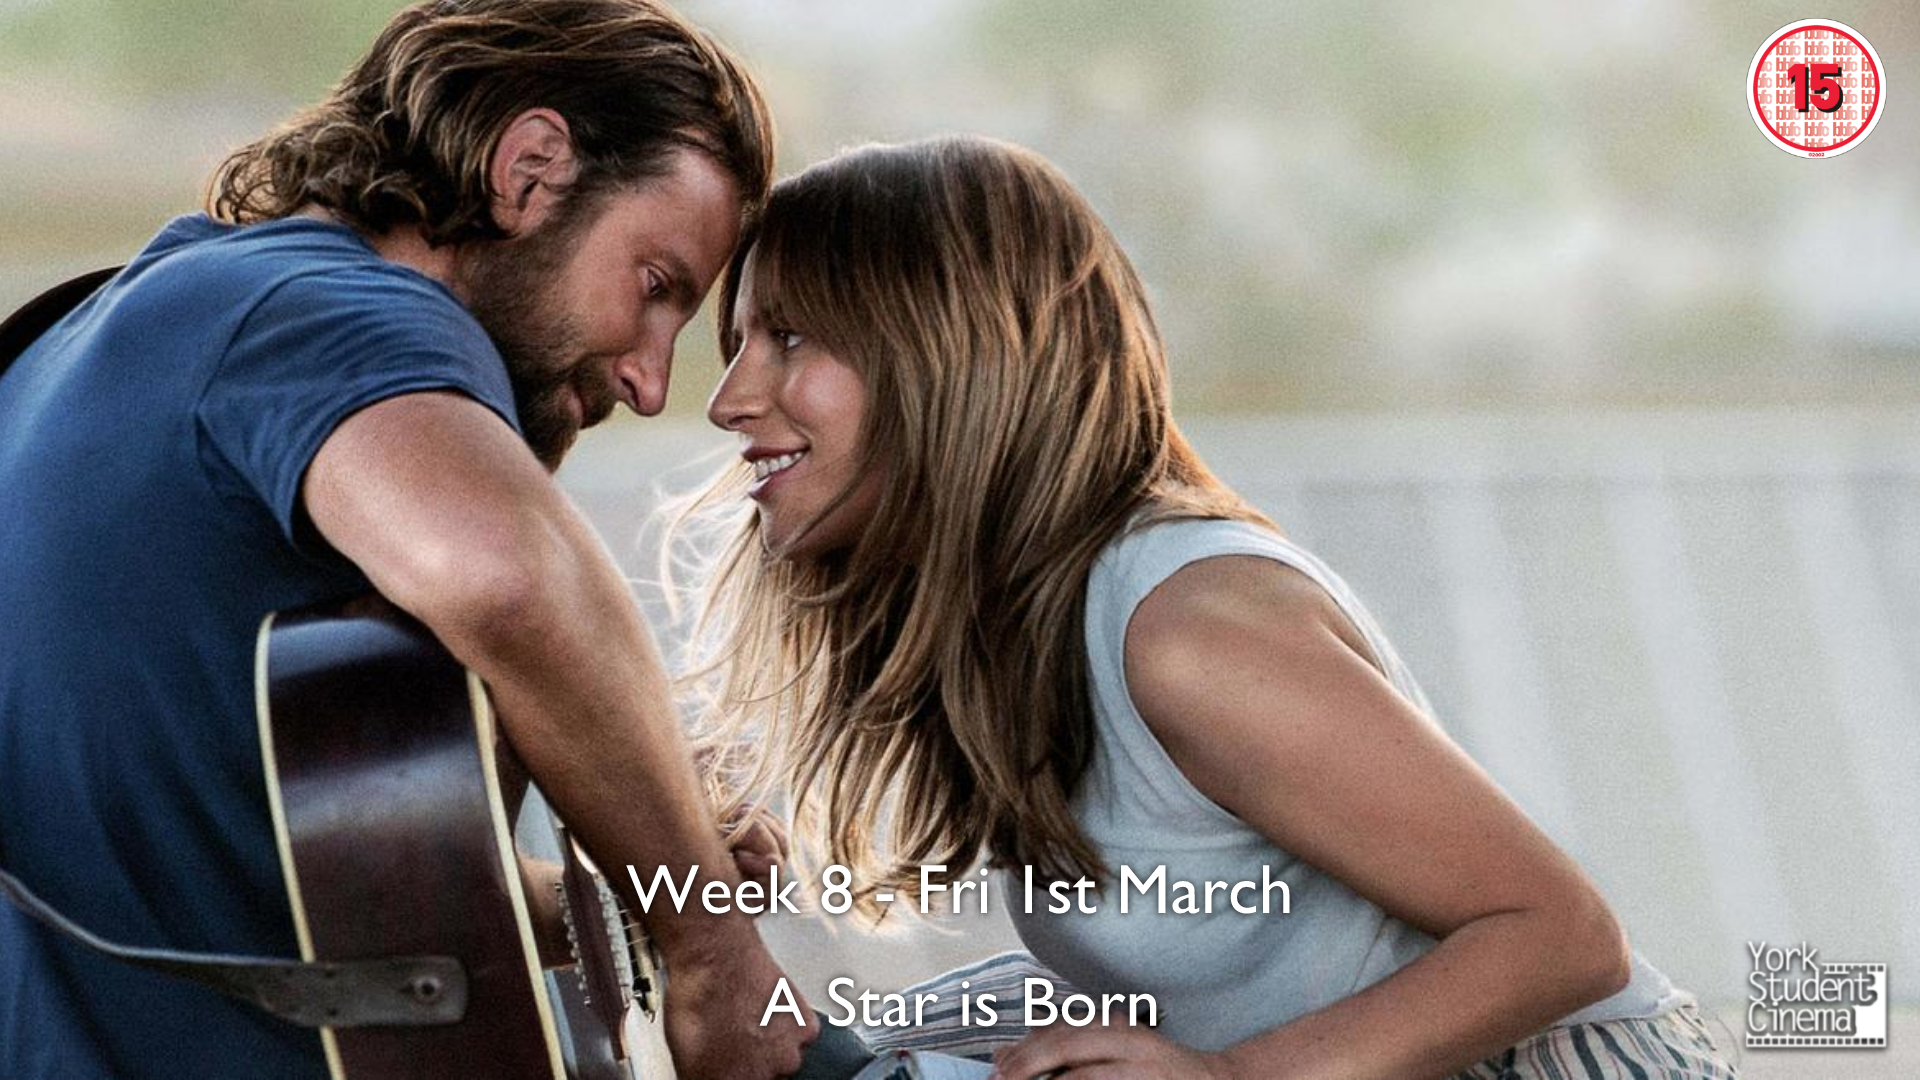 YSC Screening of A Star Is Born